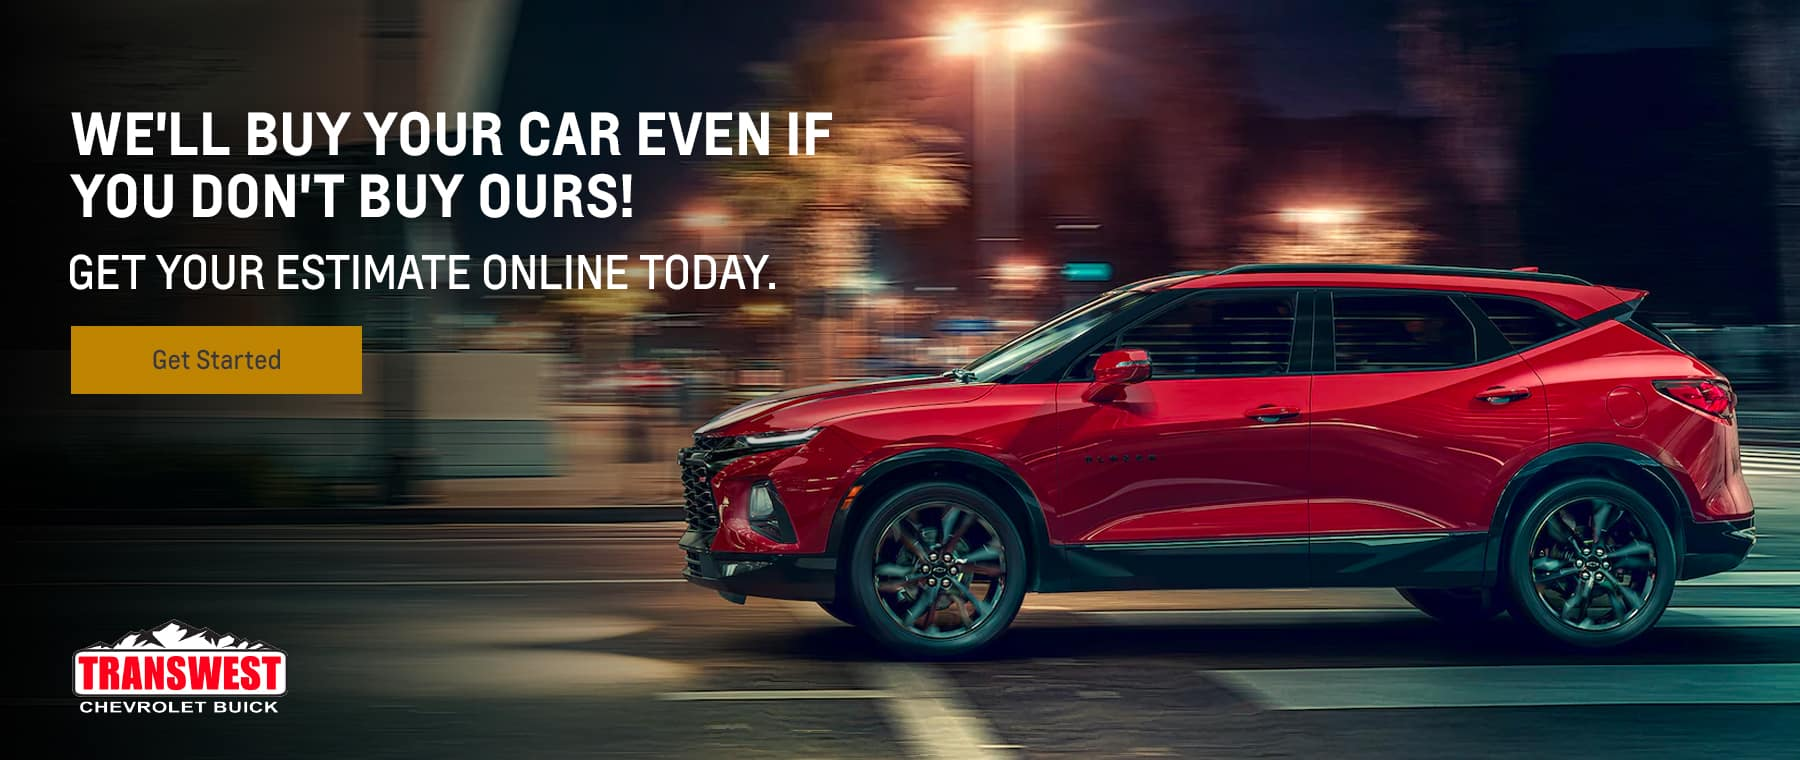 We'll buy your car even if you don't buy ours!, Get your estimate online today.